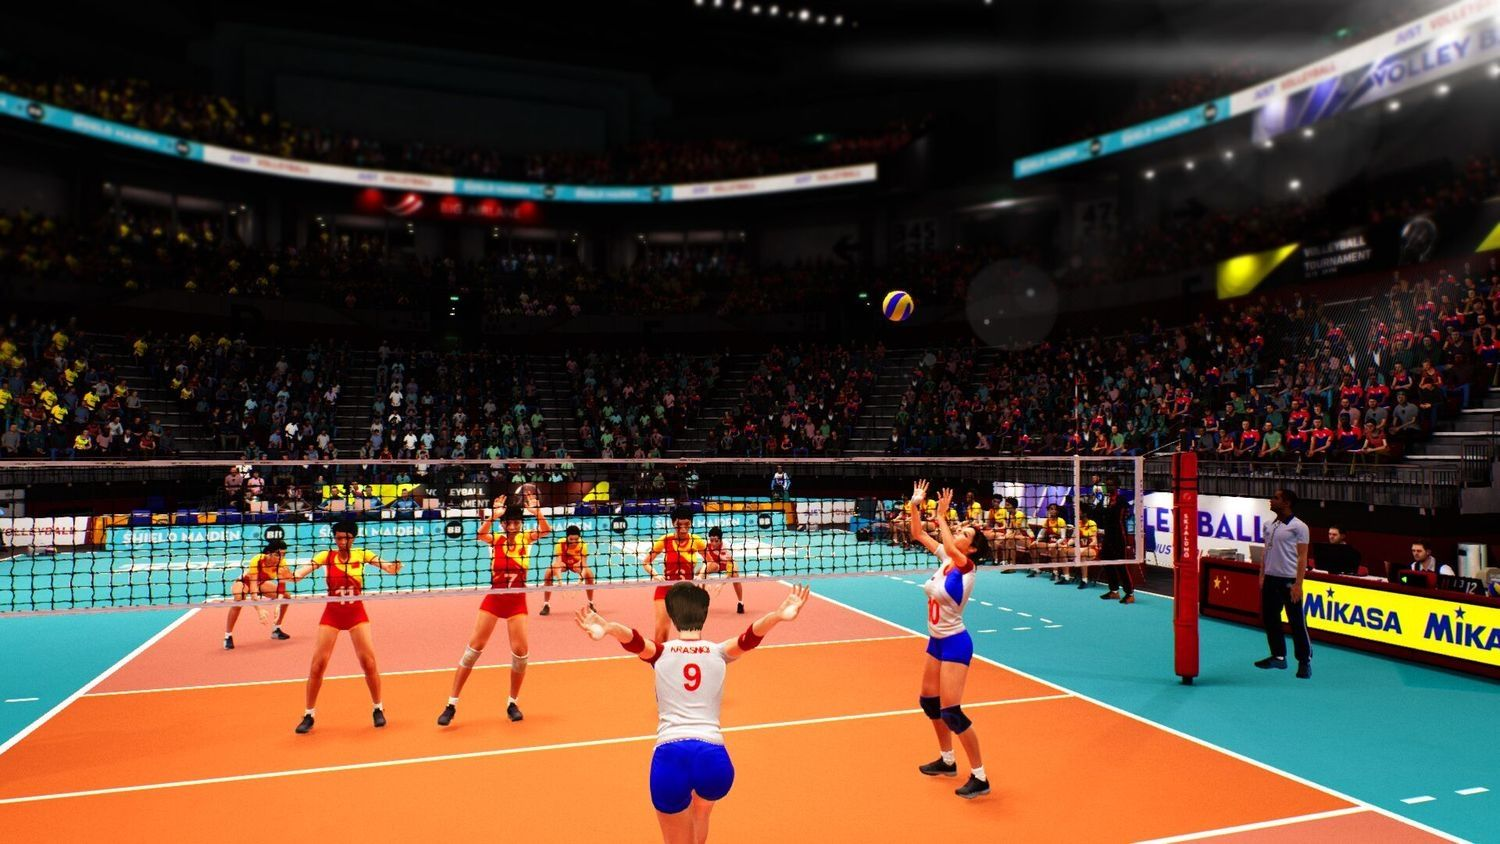 Spike Volleyball (PS4) - 5